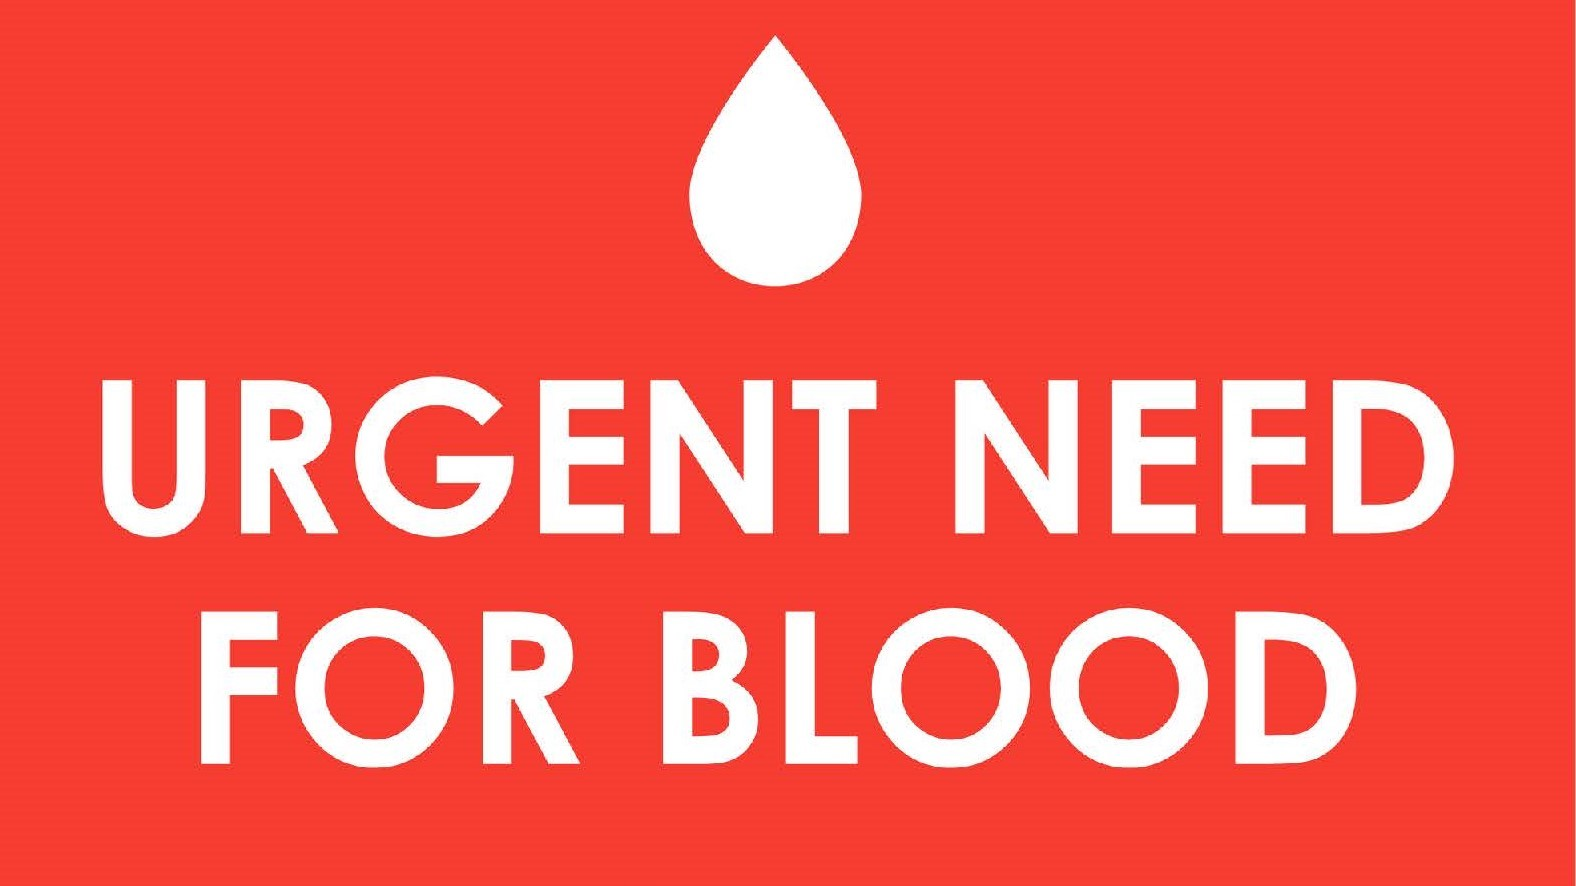 Starlight to Host Second Life-Saving Blood Drive as National Blood Shortage Continues